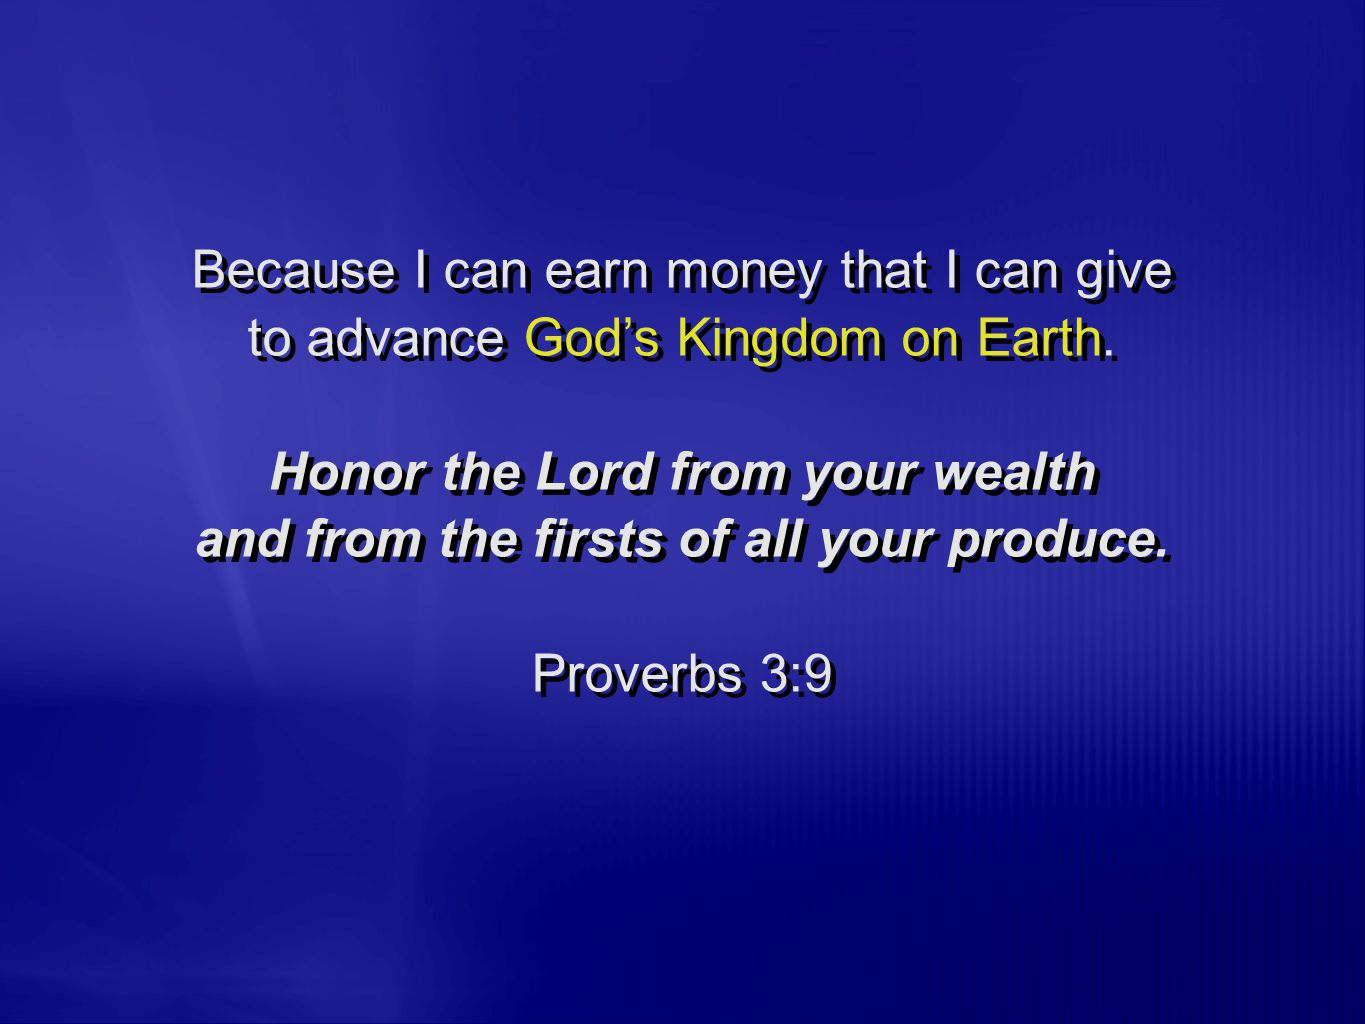 Because I can earn money that I can give to advance Gods Kingdom on Earth.